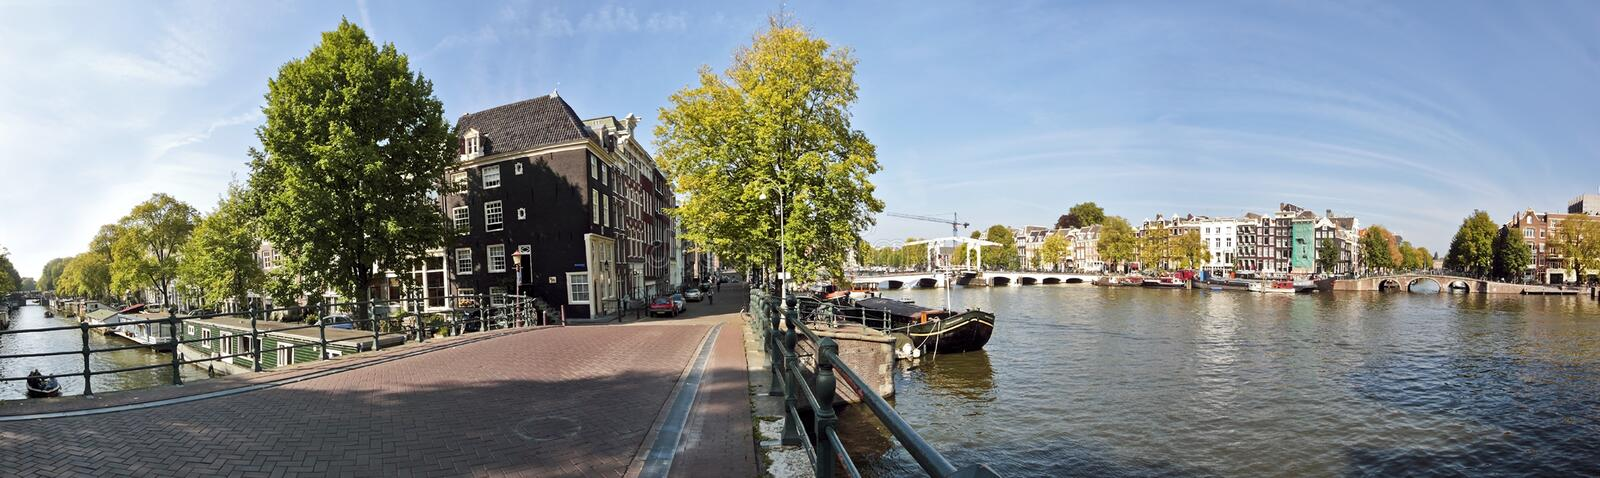 Download Amsterdam At The Amstel In The Netherlands Stock Photo - Image: 6475576